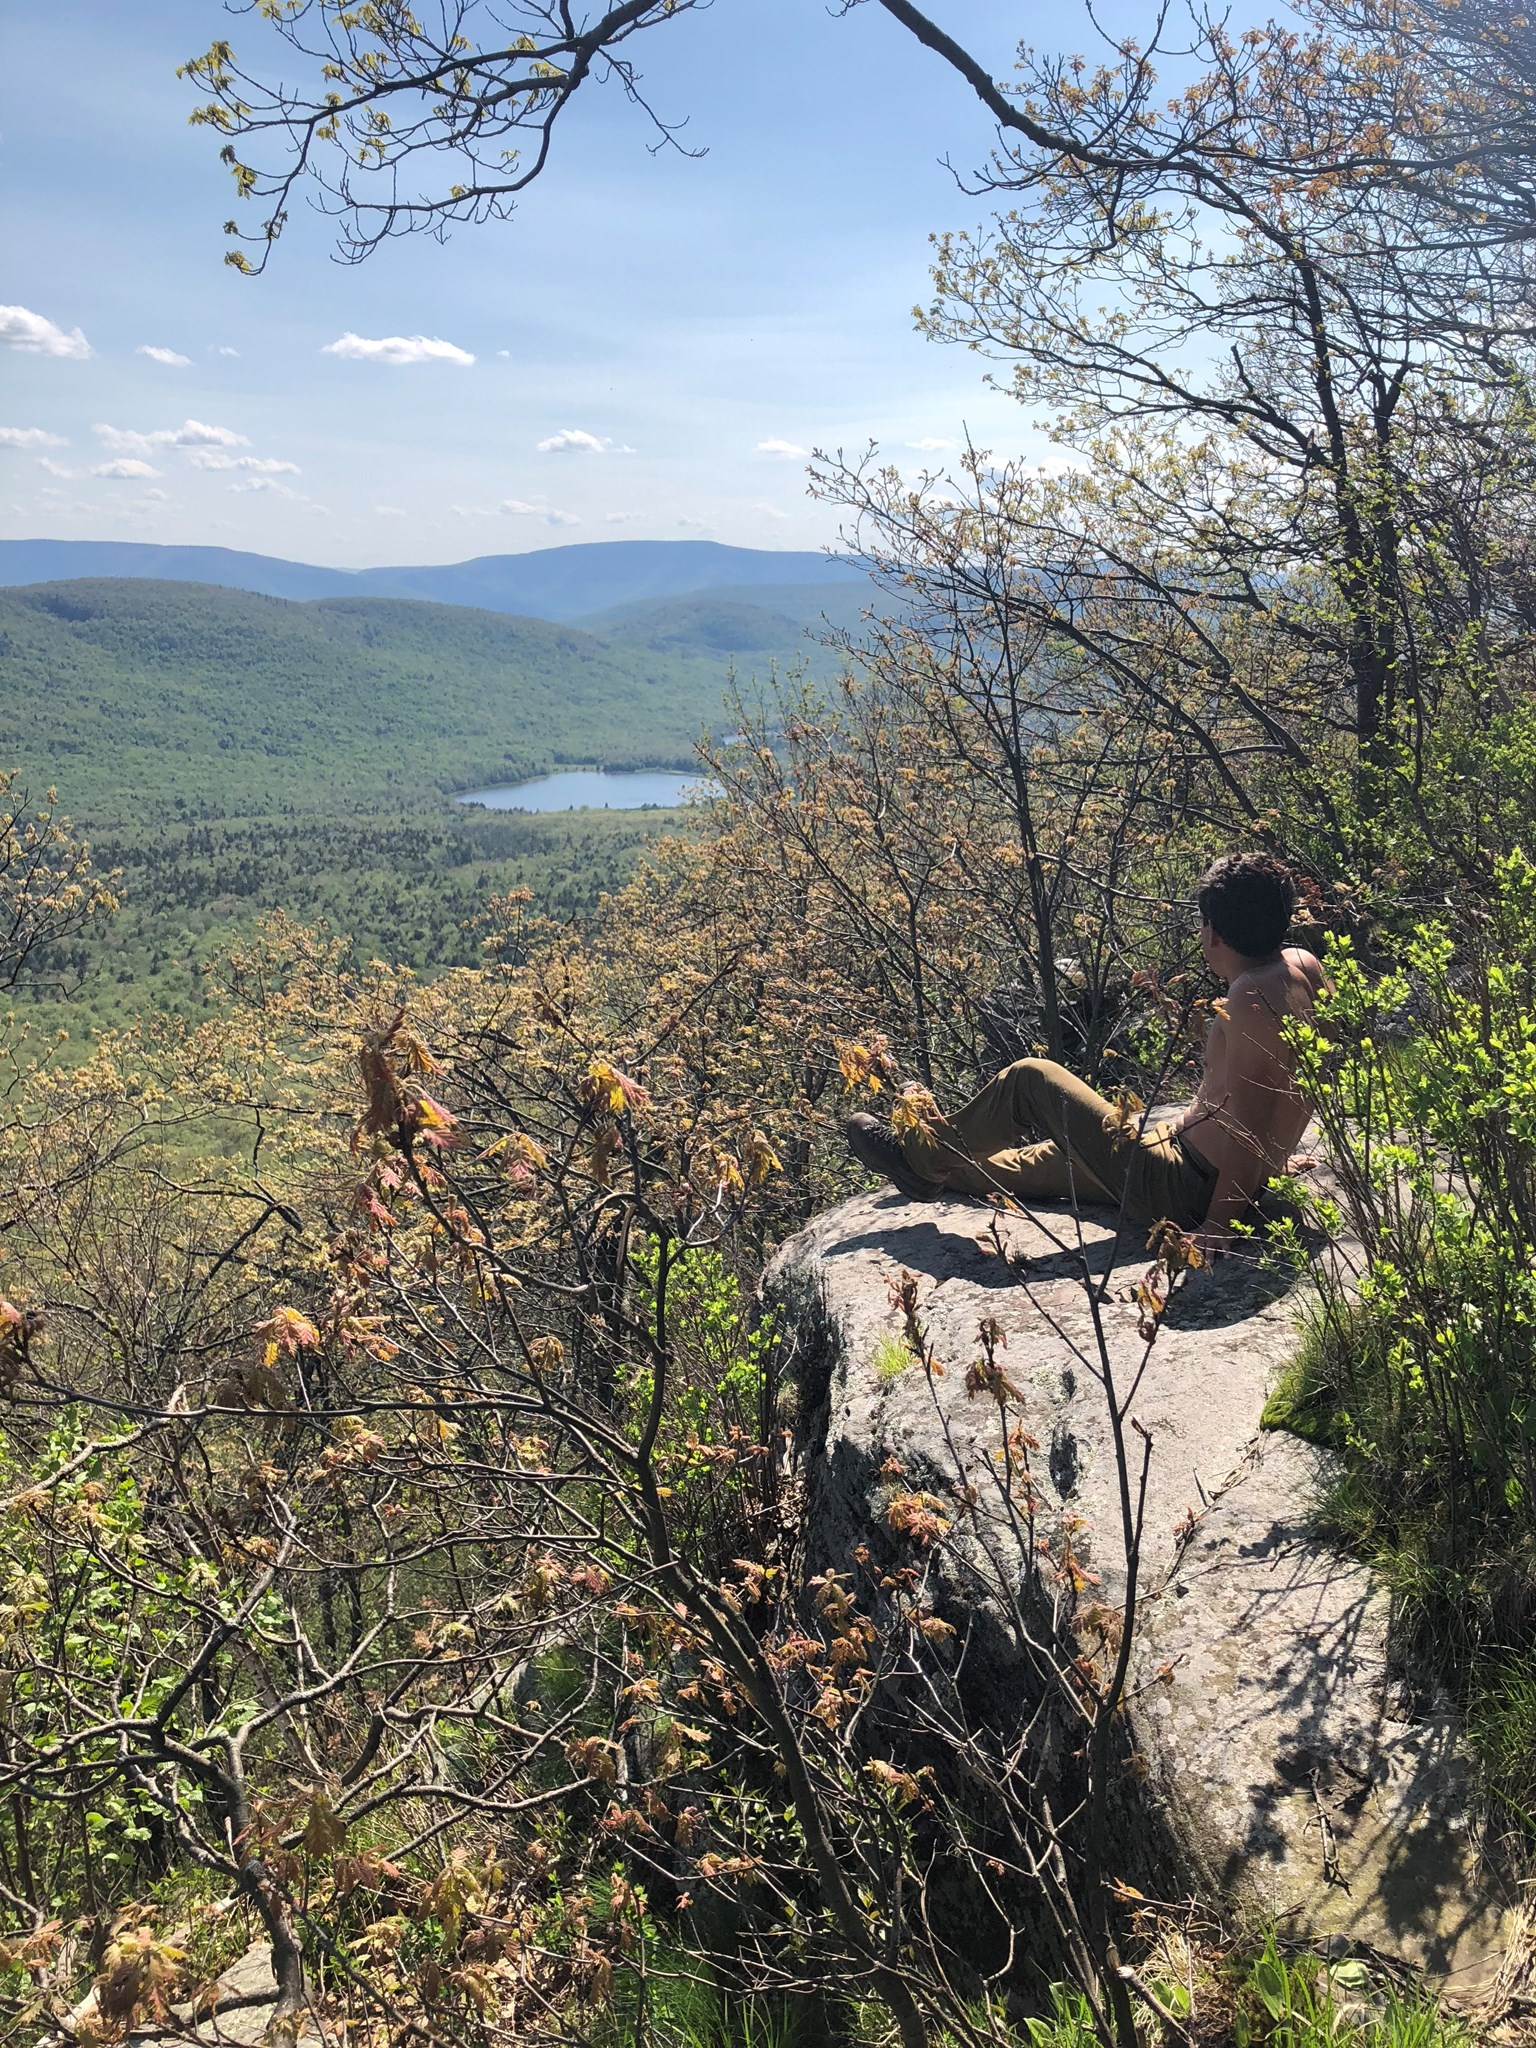 Enjoying the view and the sun on Blackhead Mountain in the Catskills, May 2018